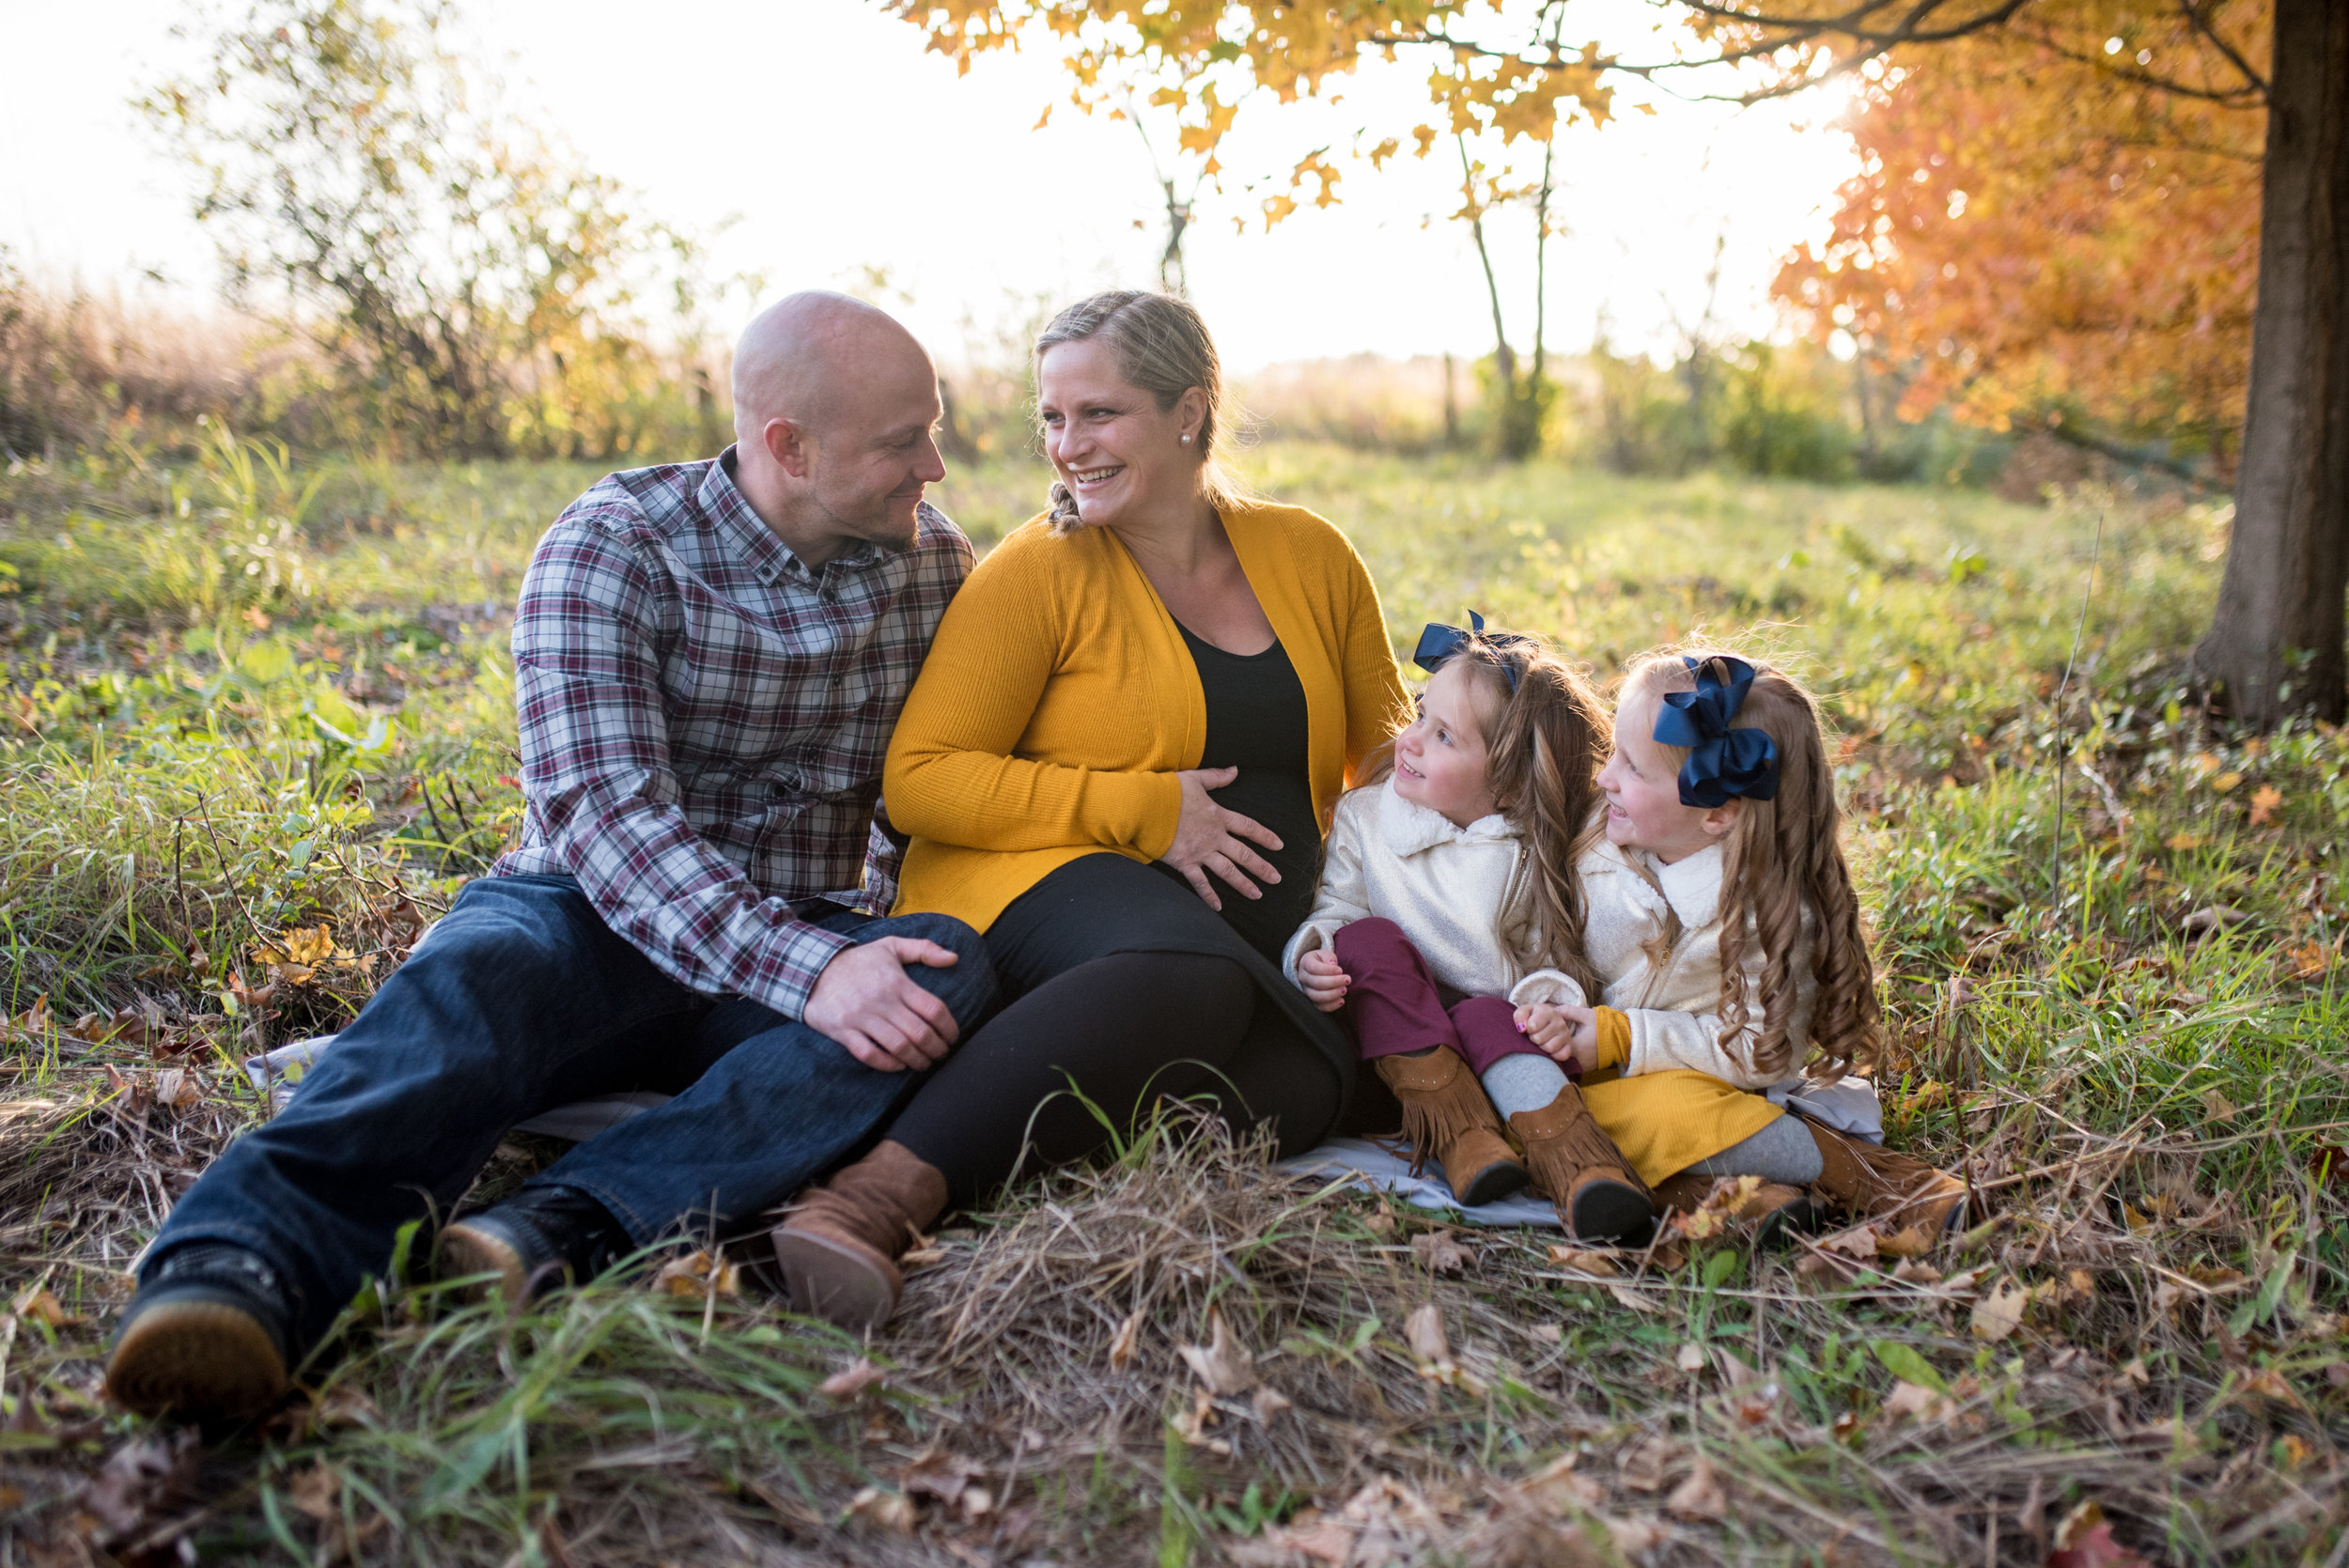 Family of four sitting on the ground in a field, pregnant mom and daughters smiling at dad